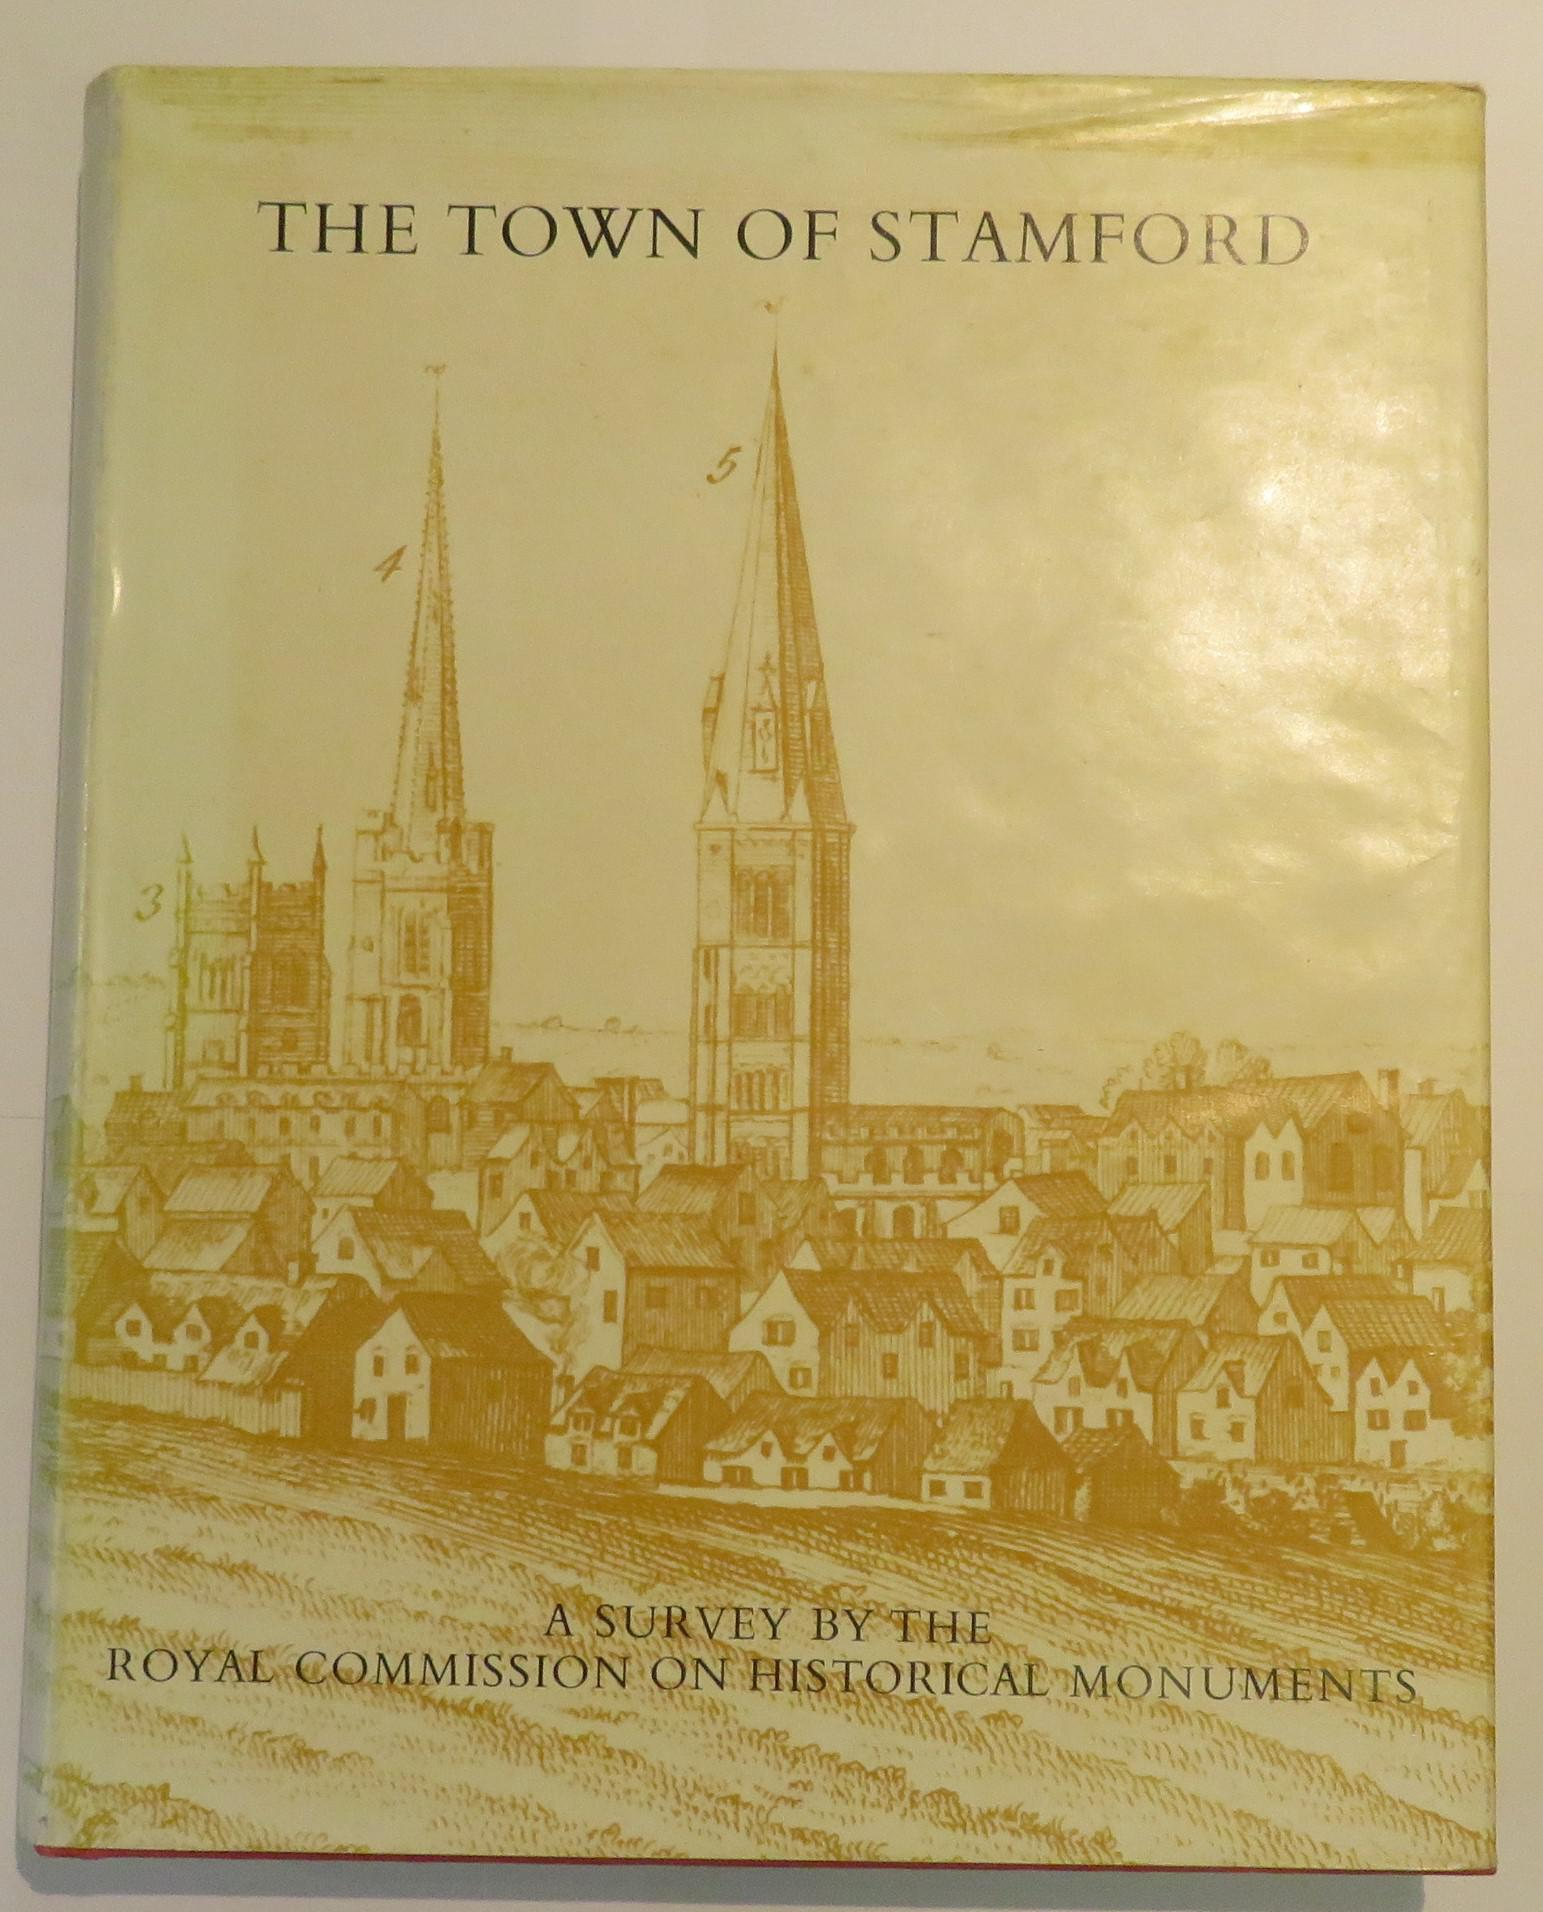 The Town of Stamford